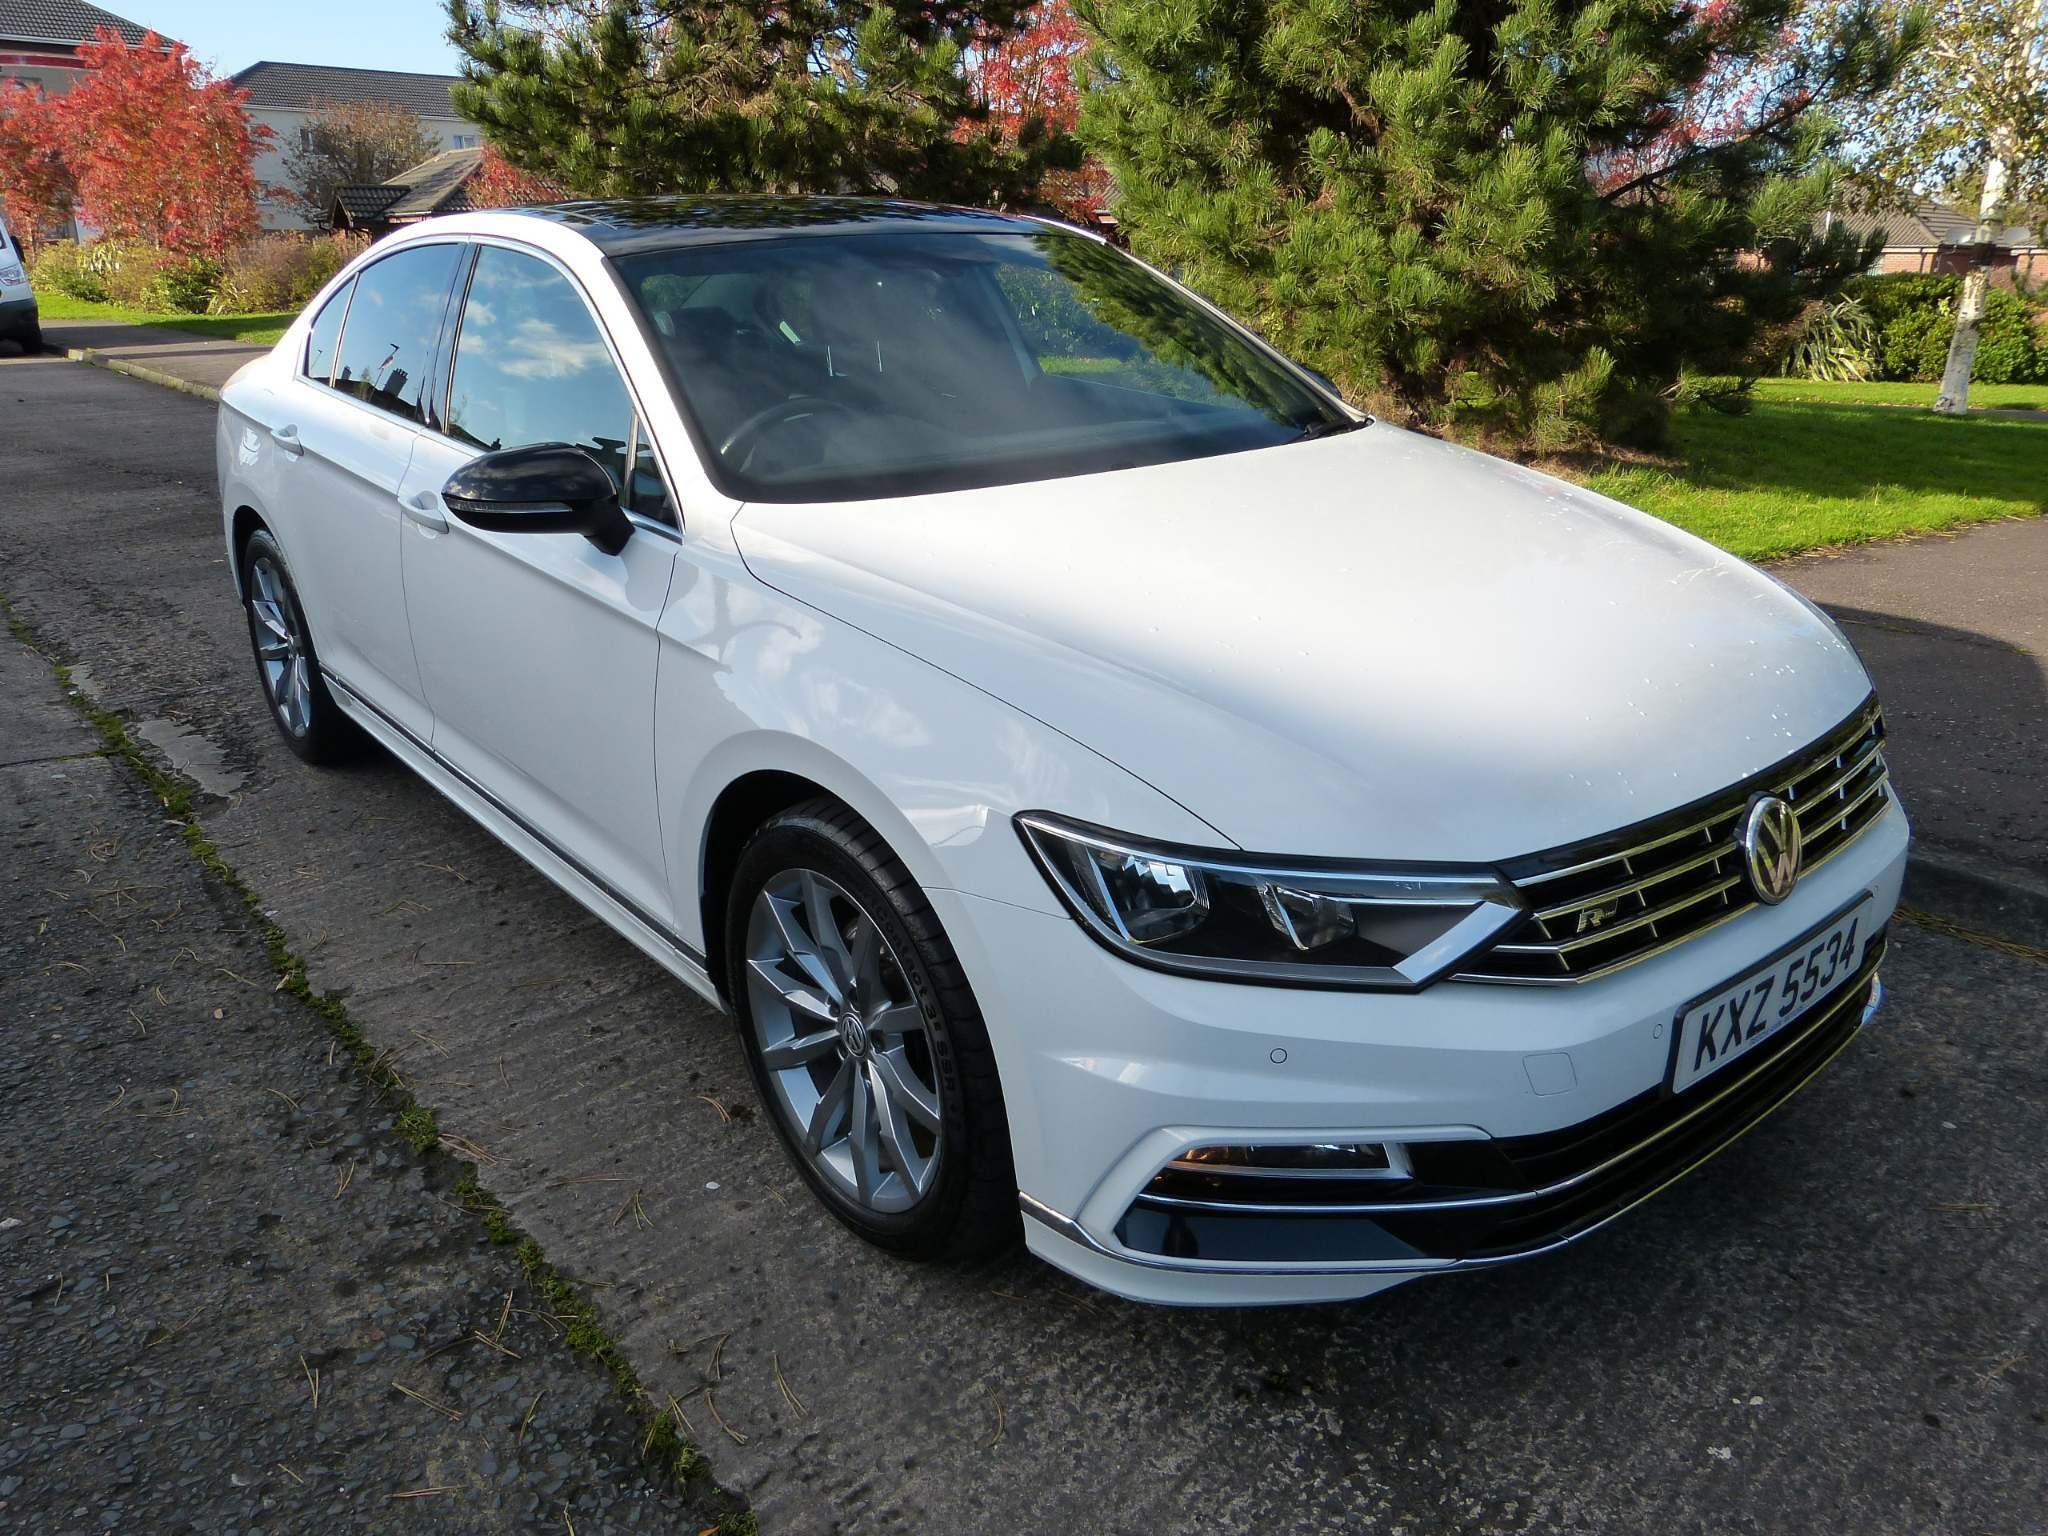 2017 VOLKSWAGEN Passat 2.0 TDI BlueMotion Tech R-Line (s/s) Diesel Manual glass sunroof – Beechlawn Motors Belfast